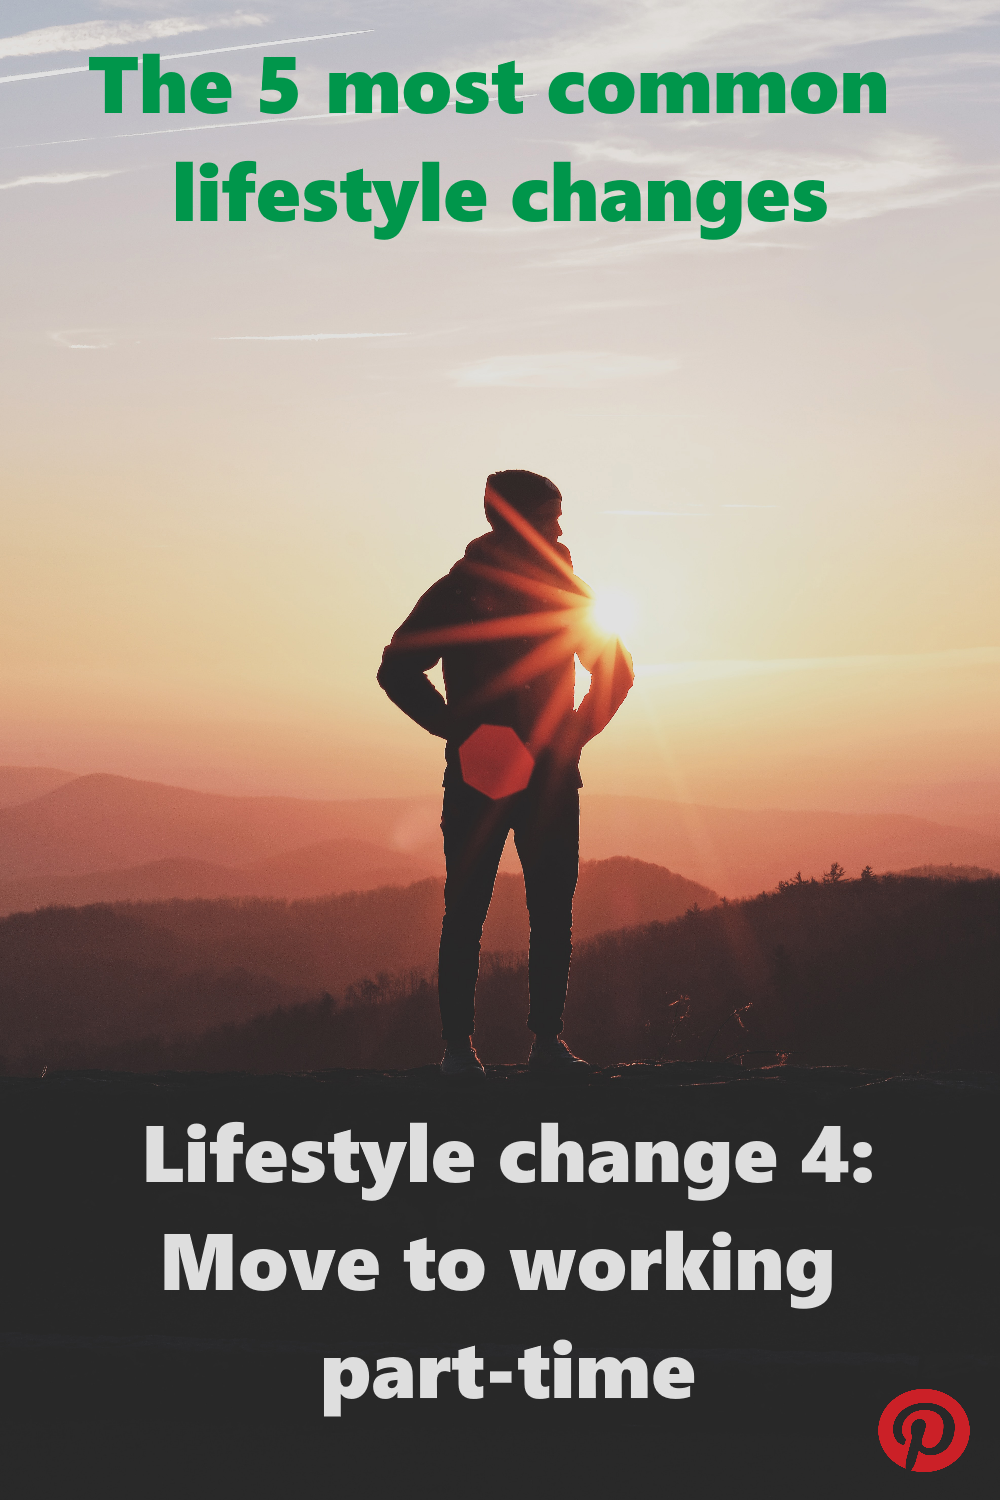 The 5 most common lifestyle changes - #4 Moving to working part-time